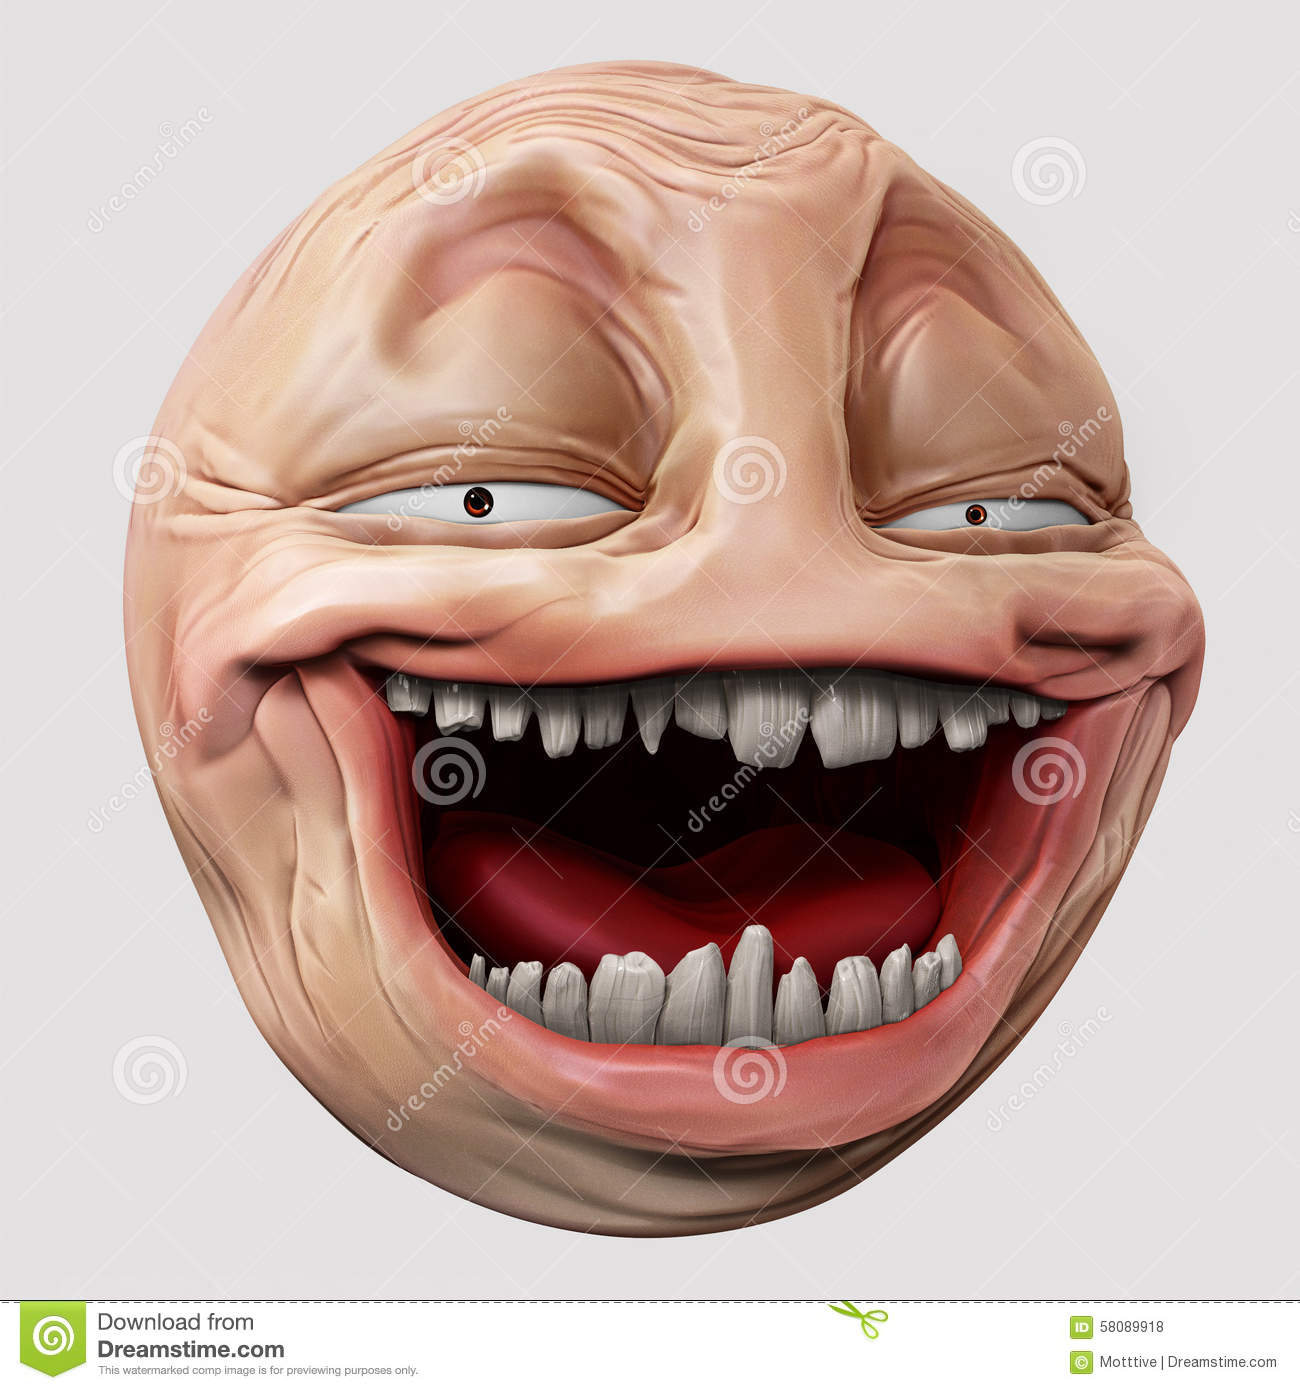 Stock Quotes Free Real Time: Hyper Troll 3d Illustration Stock Illustration